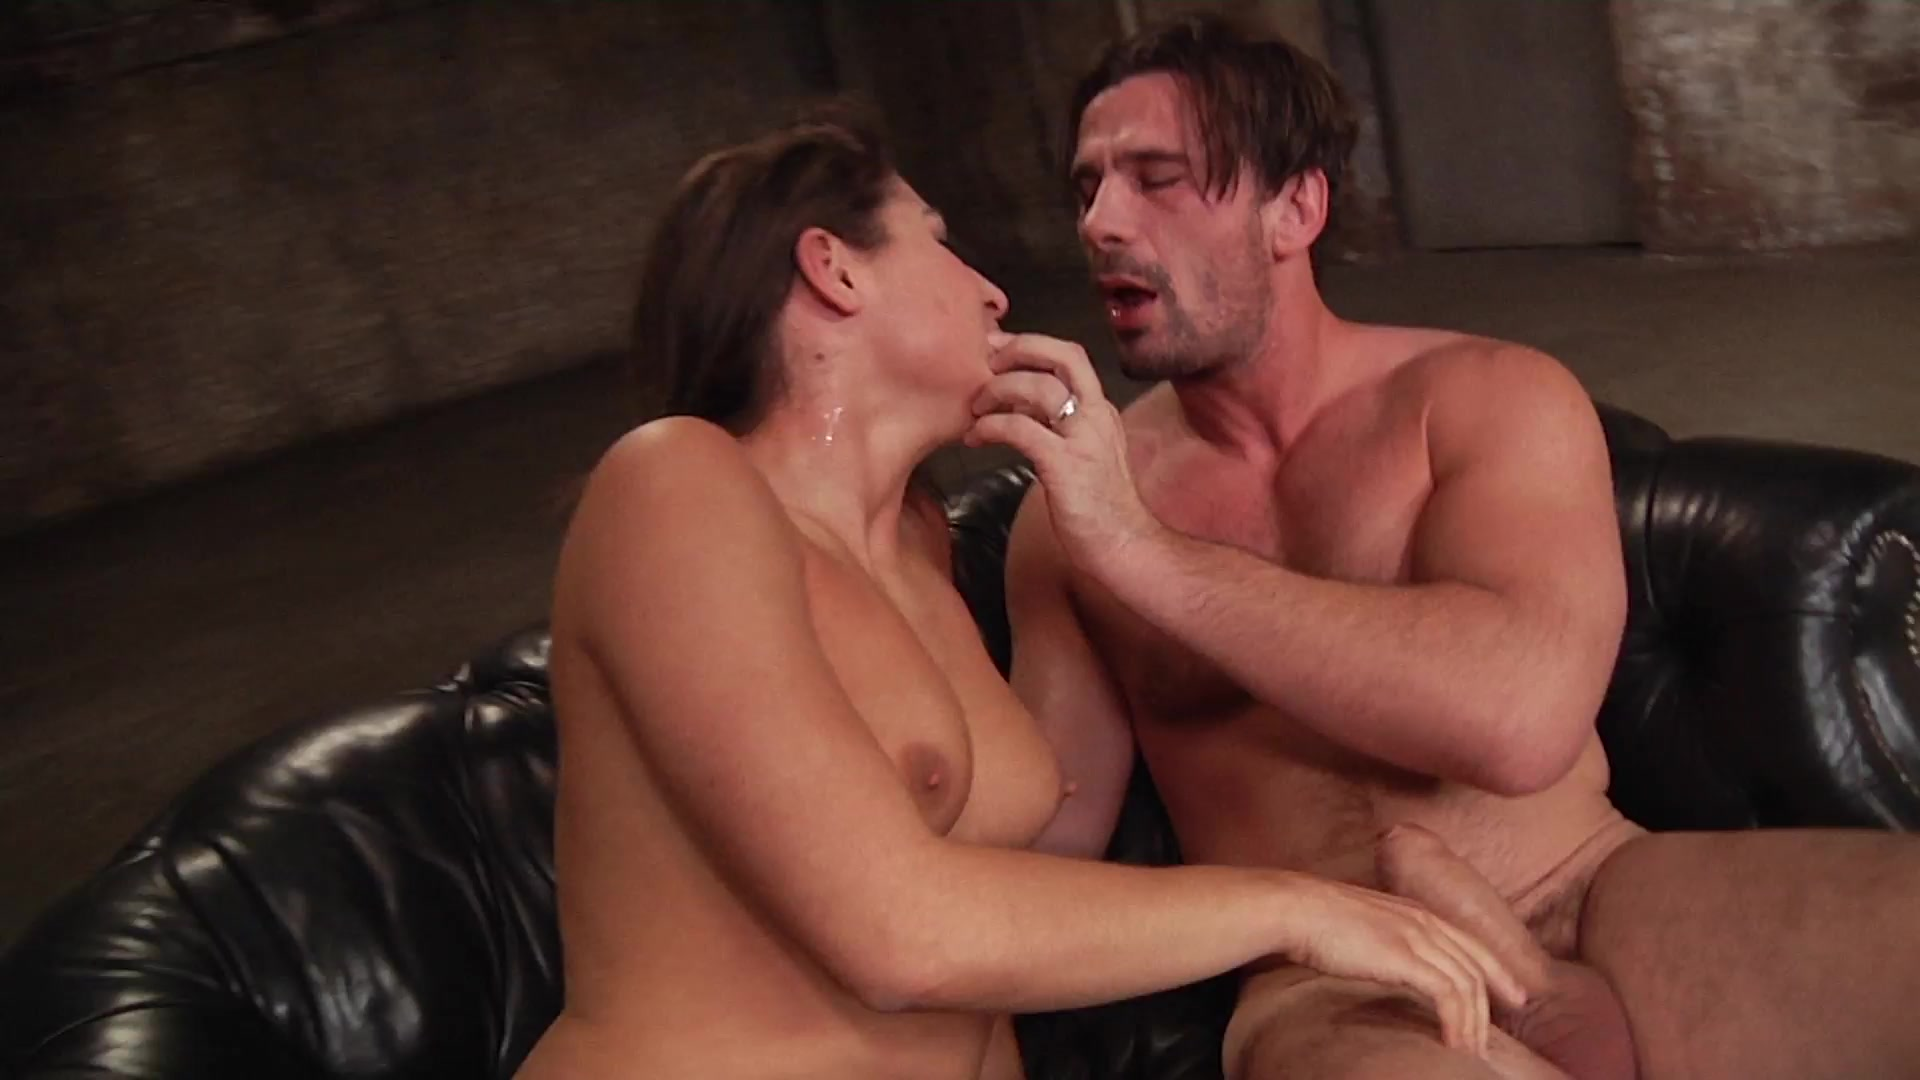 Scene with Abella Danger - image 12 out of 20